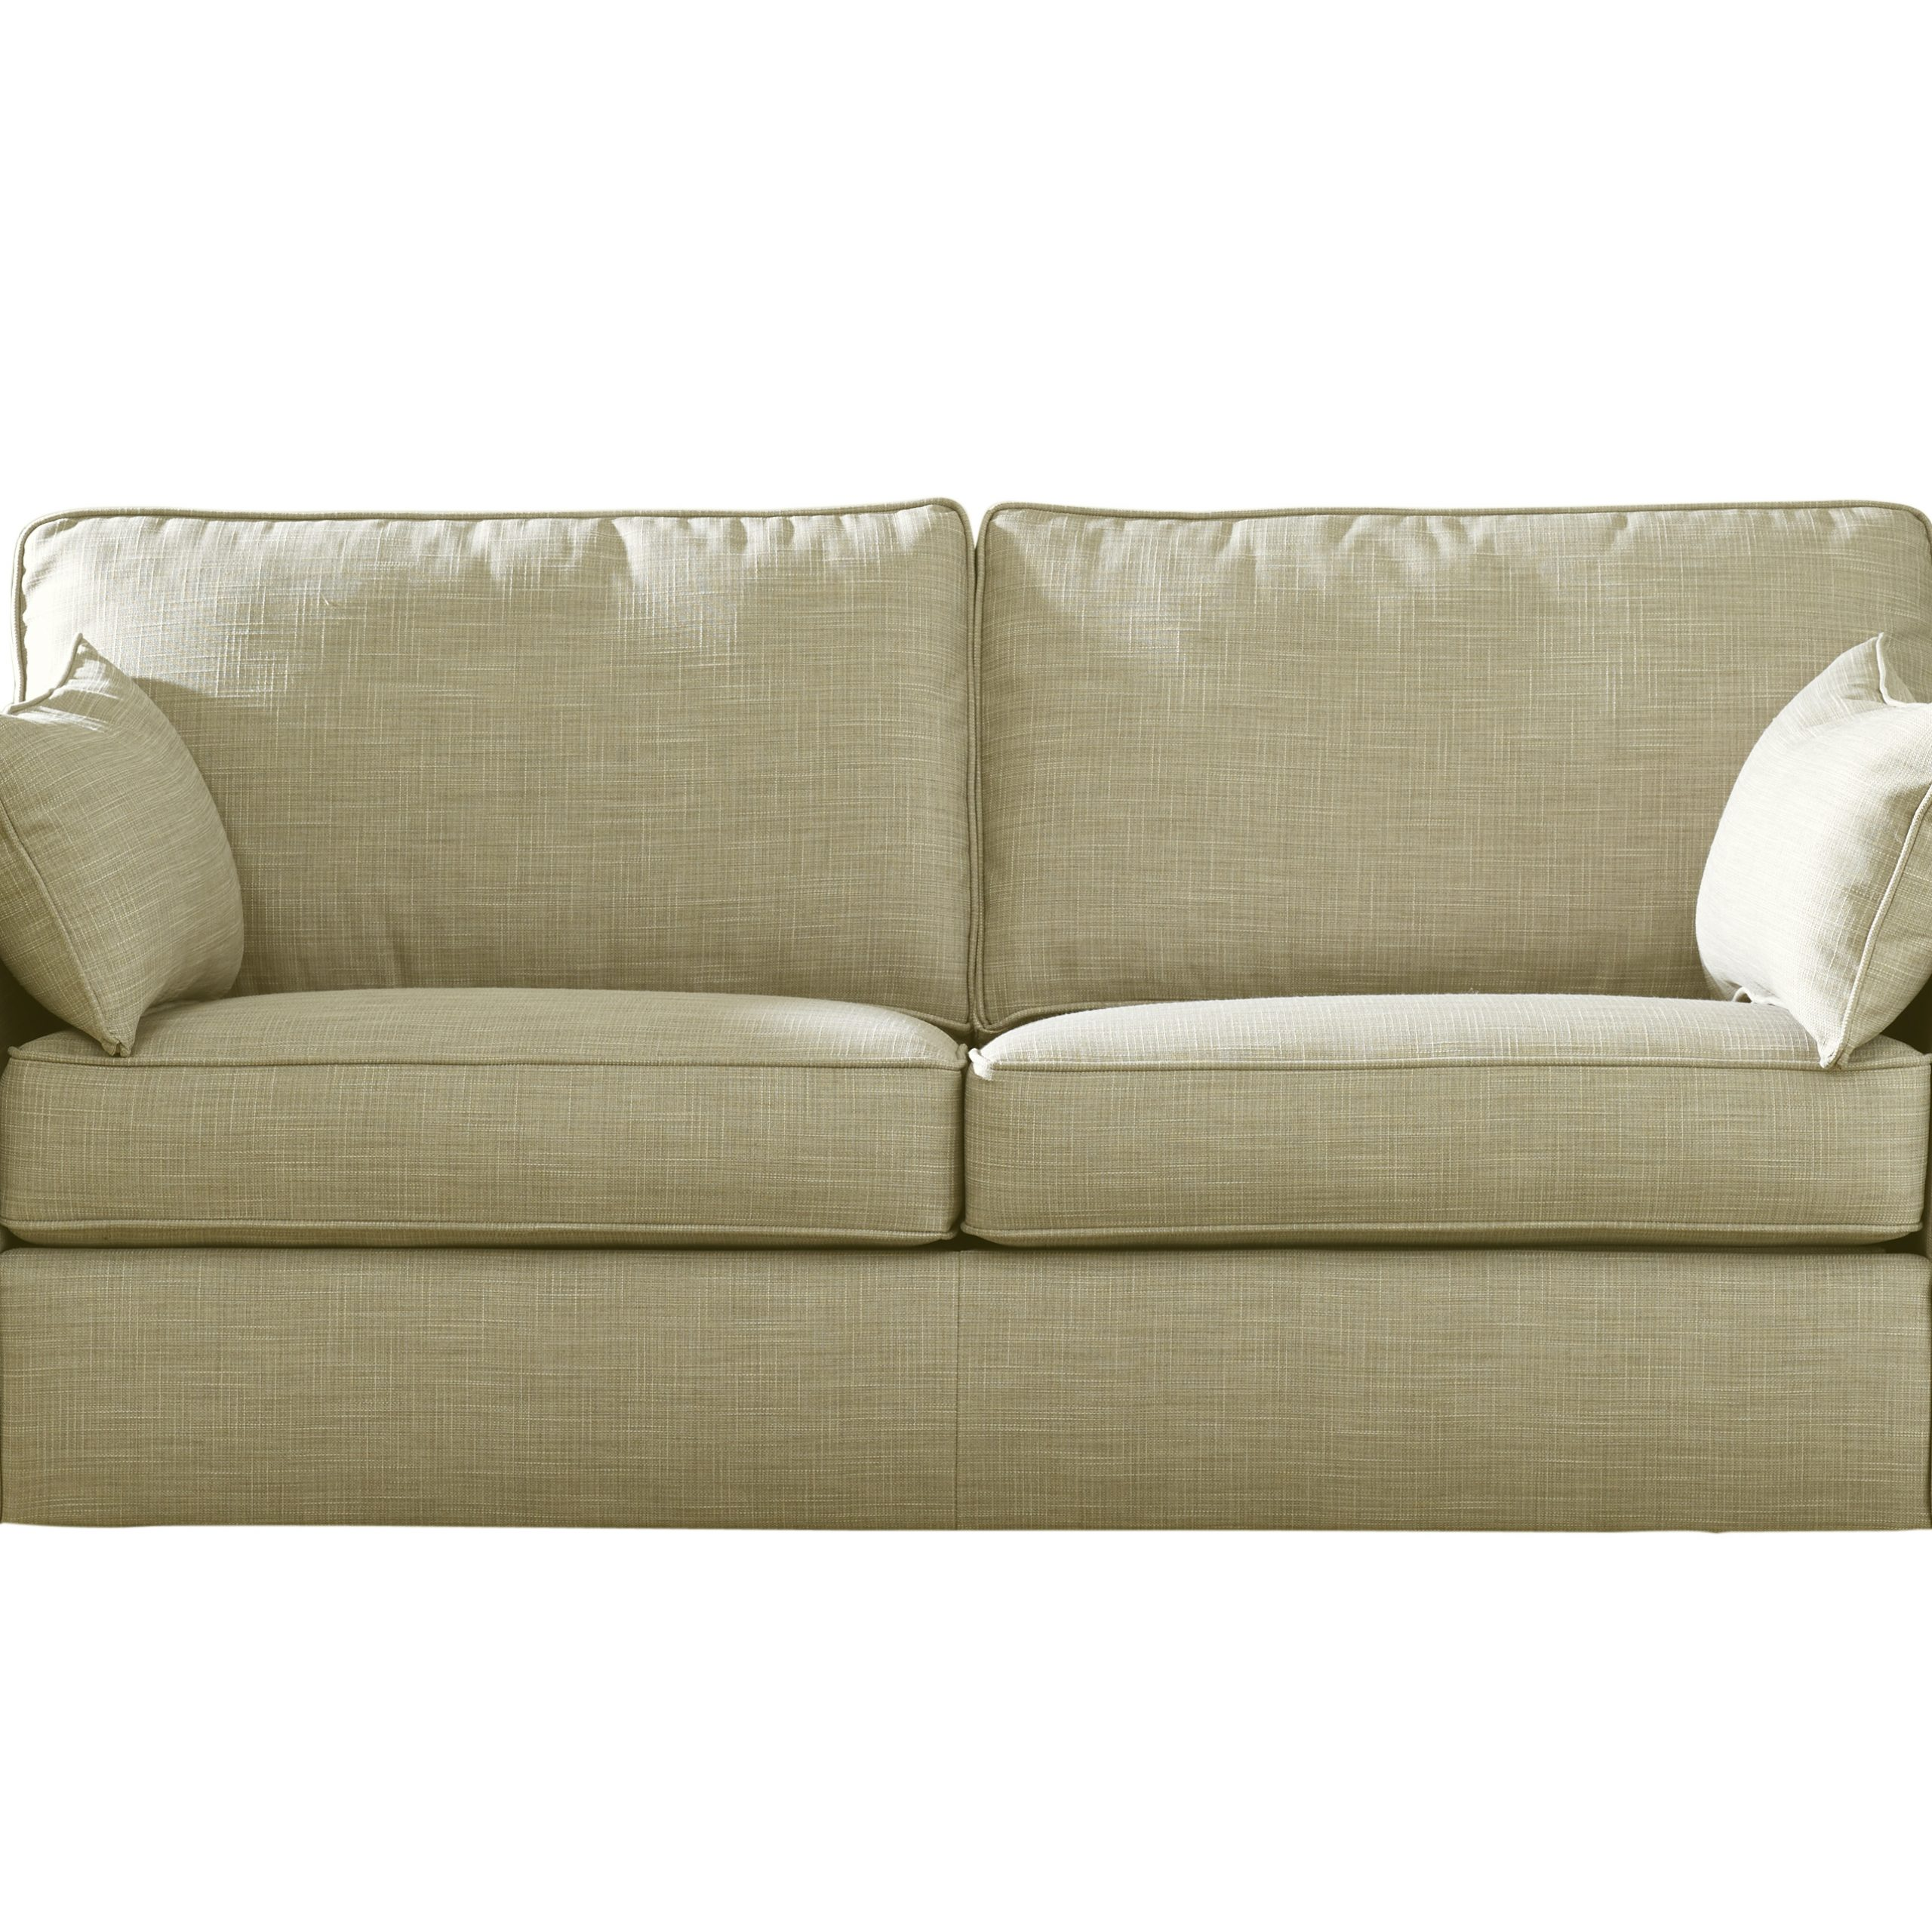 Montana Sofa Bed – Comfort And Slouch For Montana Sofas (View 4 of 15)